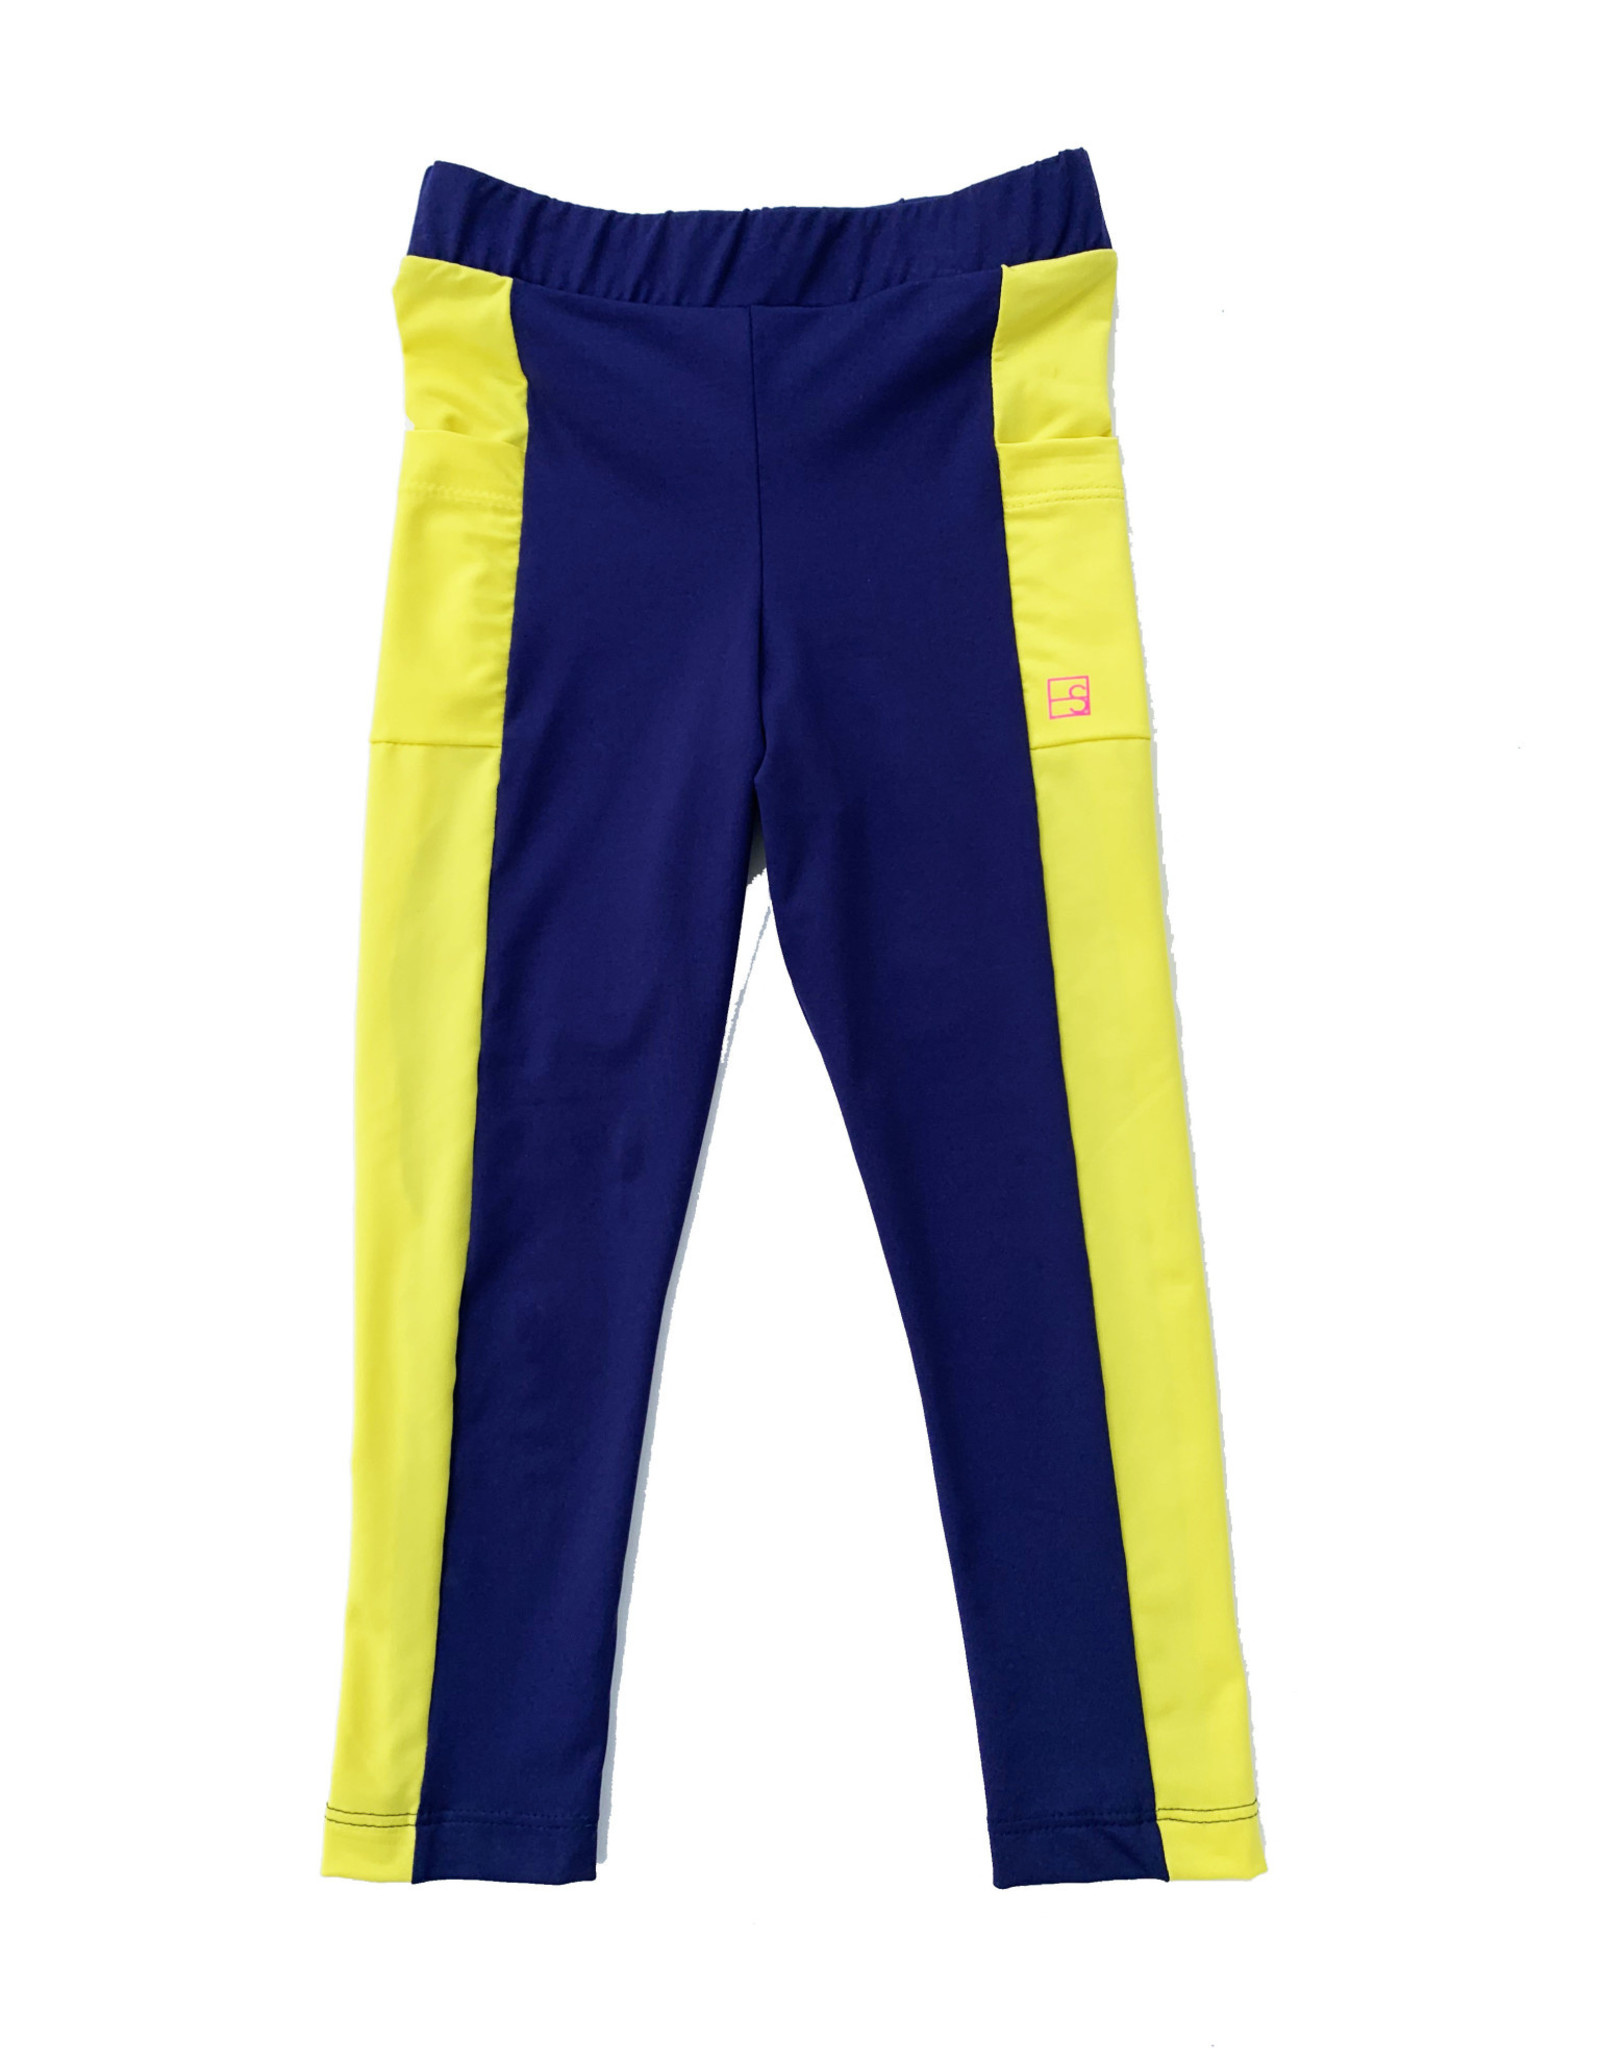 SET Lila Navy Legging with Yellow Accent